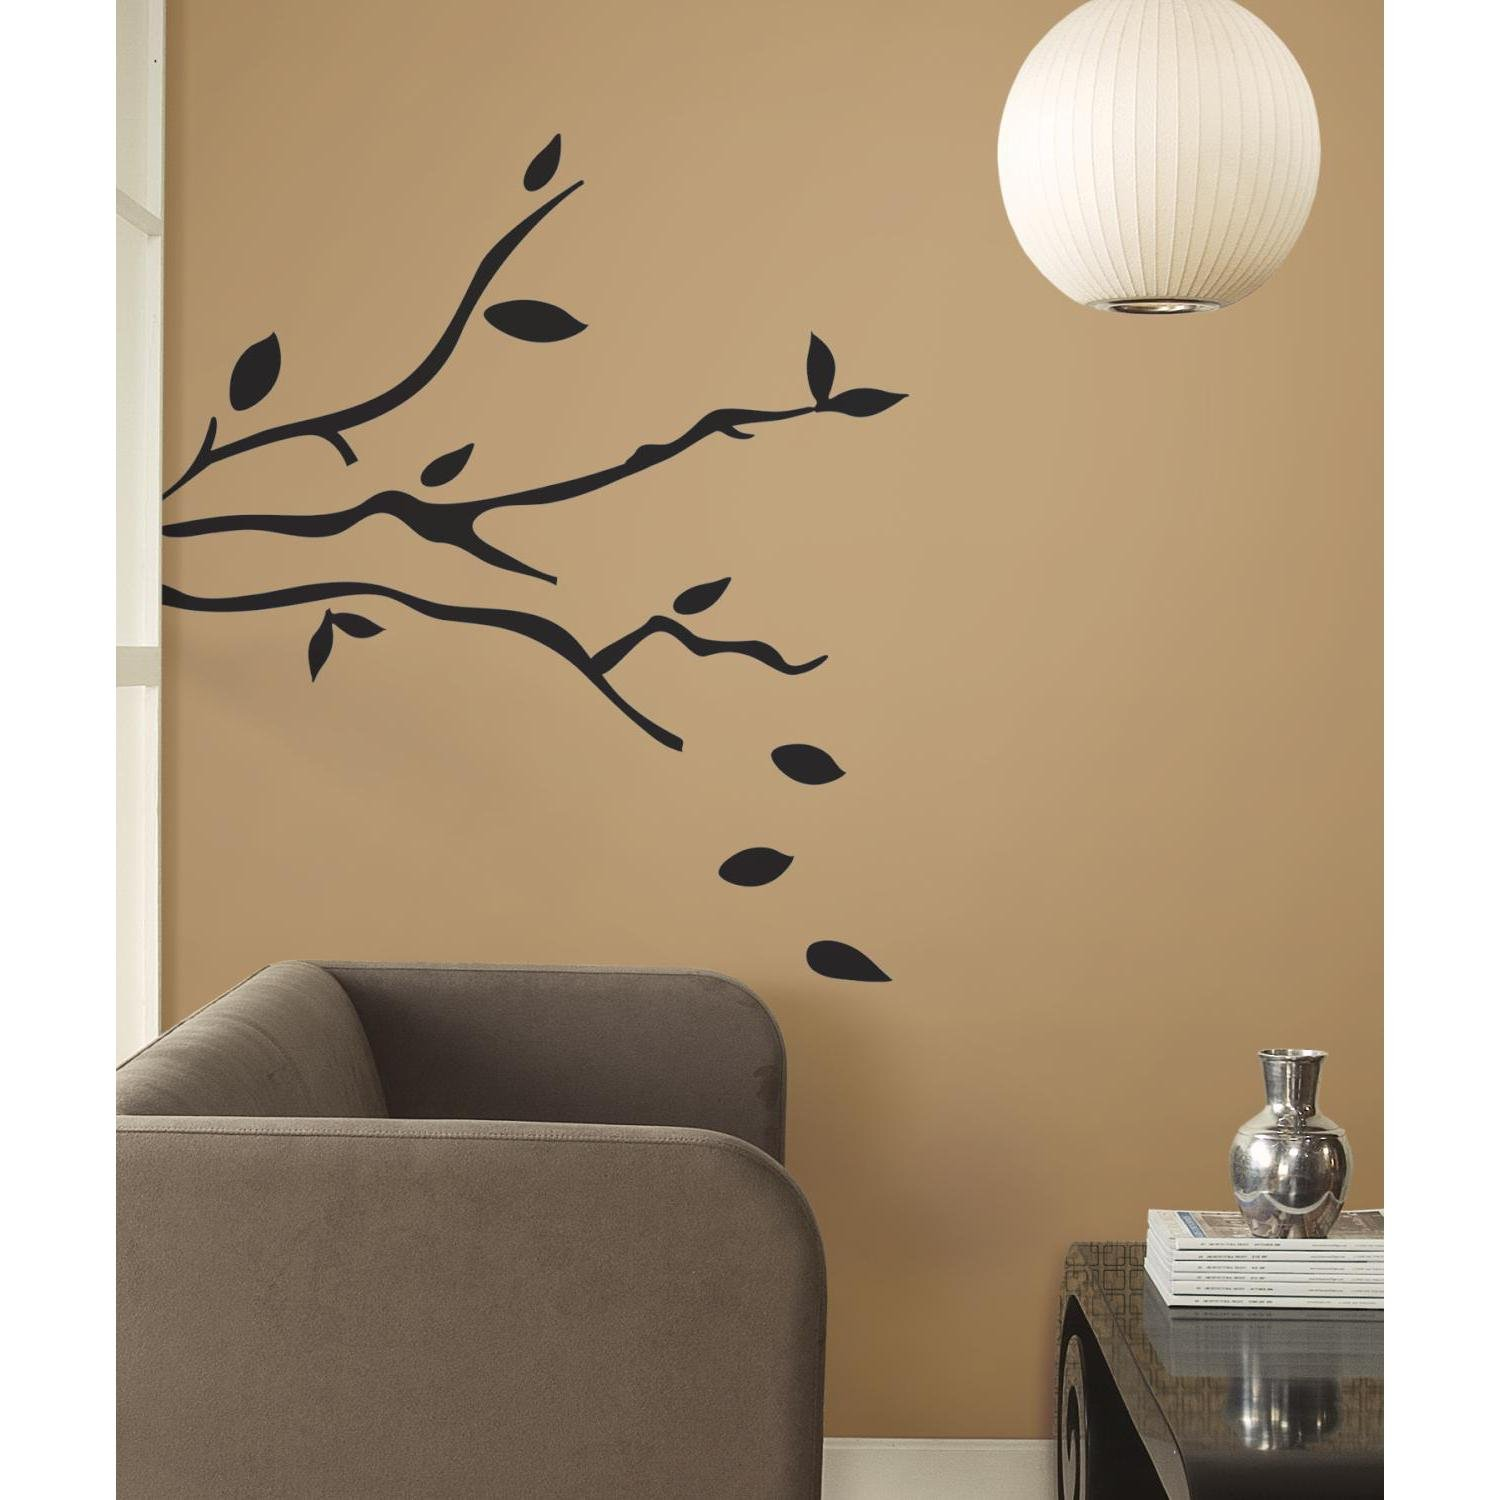 Merveilleux RoomMates RMK1317GM Tree Branches Peel U0026 Stick Wall Decals   Wall Decor  Stickers   Amazon.com